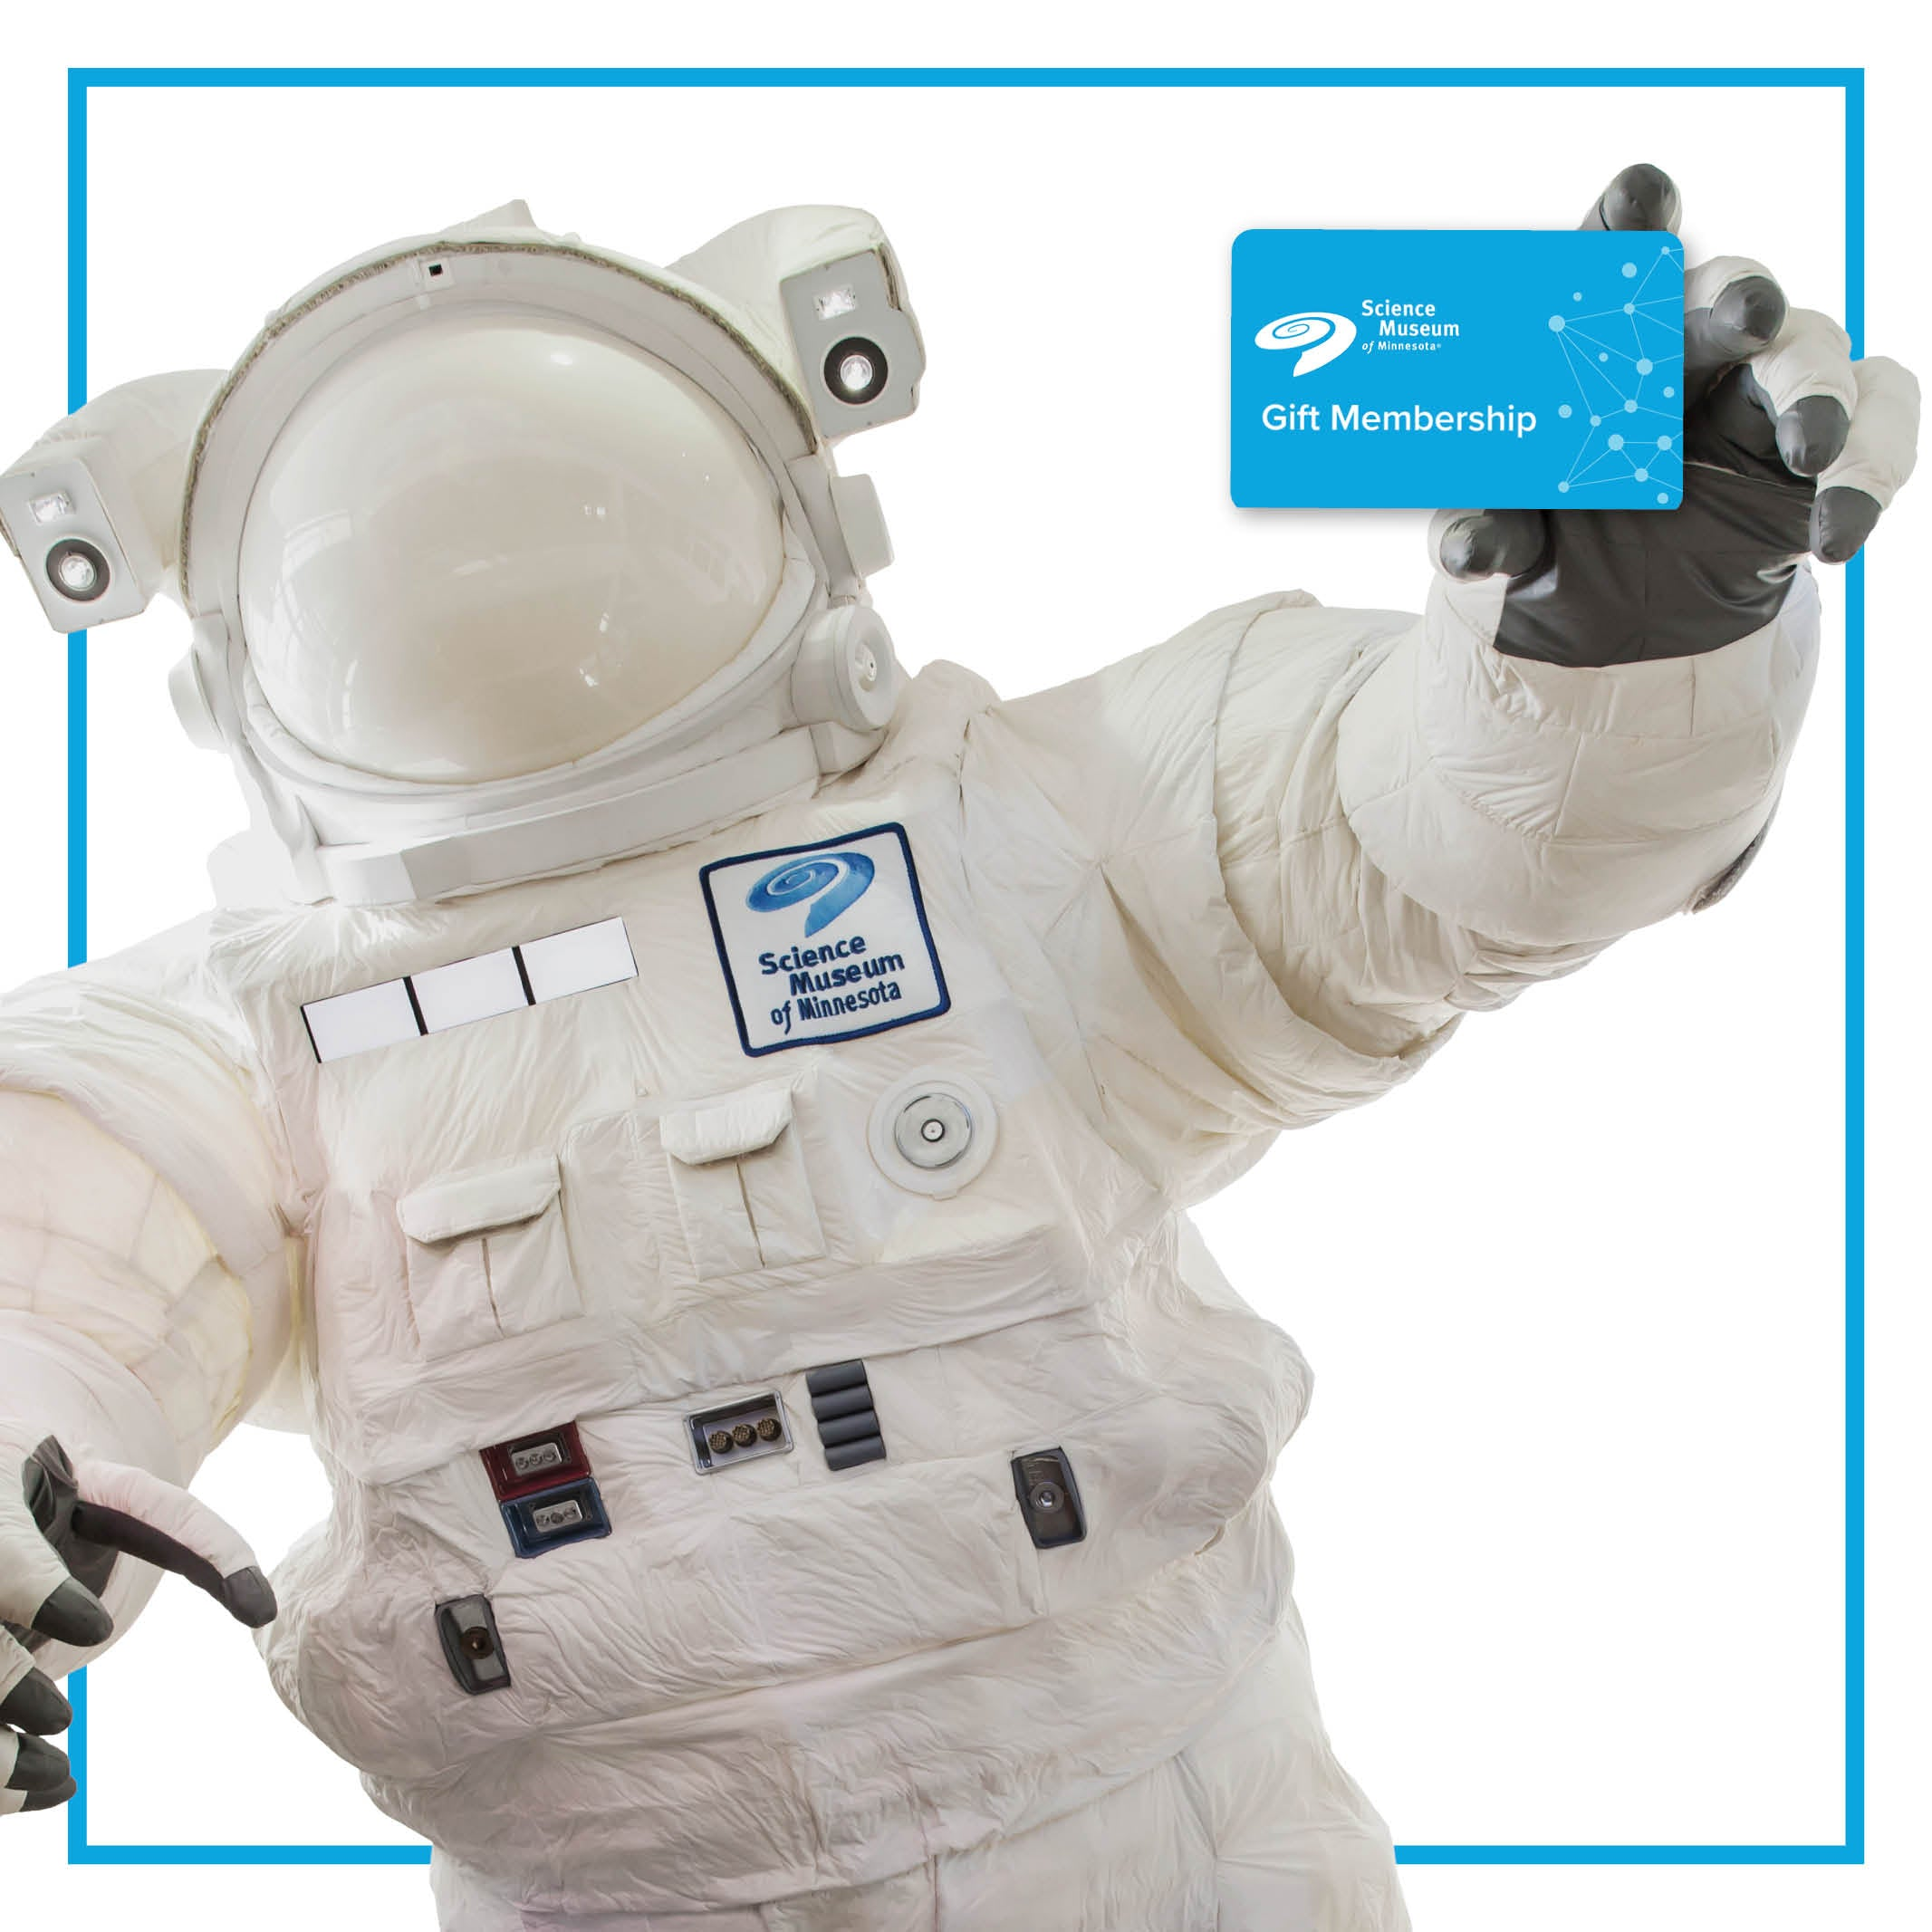 Giant astronaut trying to catch a floating gift Membership gift card